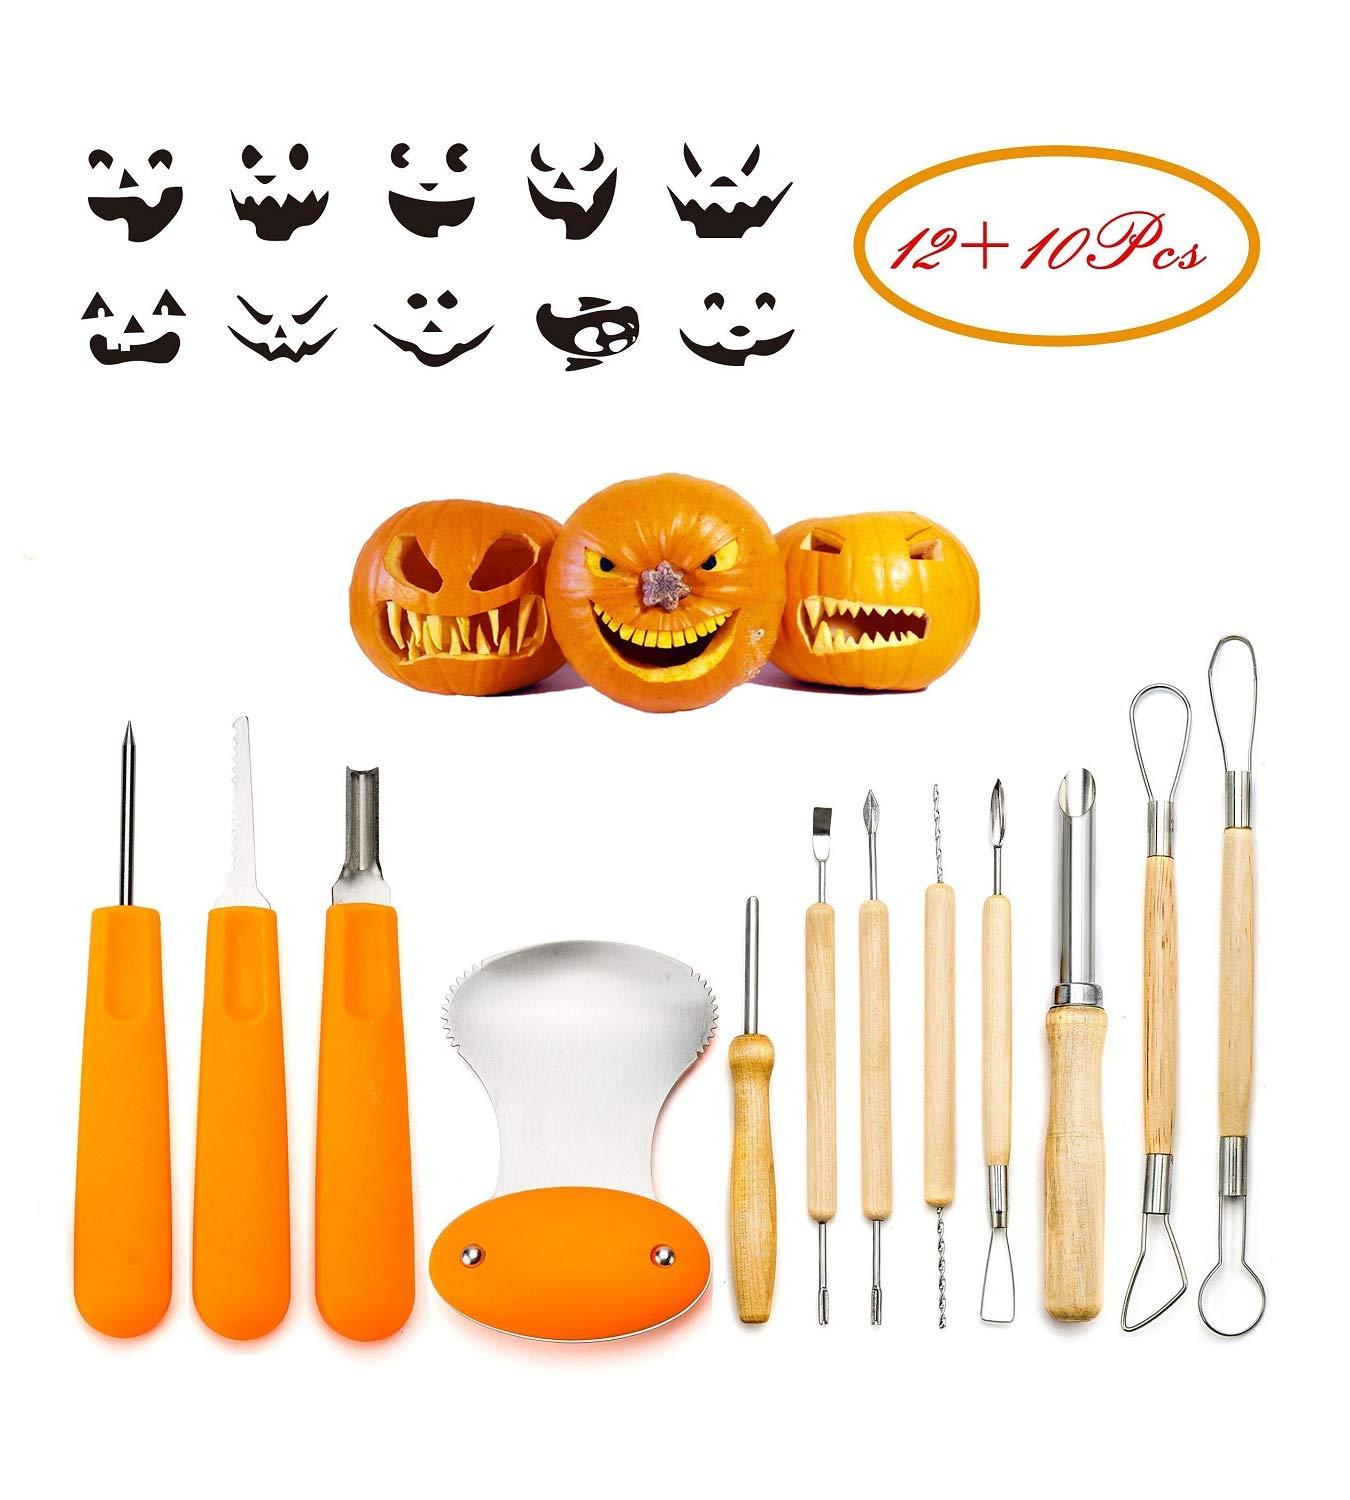 Professional Pumpkin Carving Tool Kit-Includes 12 Carving Tools And 10 Carving Stencils, Heavy Duty Stainless Steel Tool Set, Used As a Carving Knife For Pumpkin Halloween Decoration